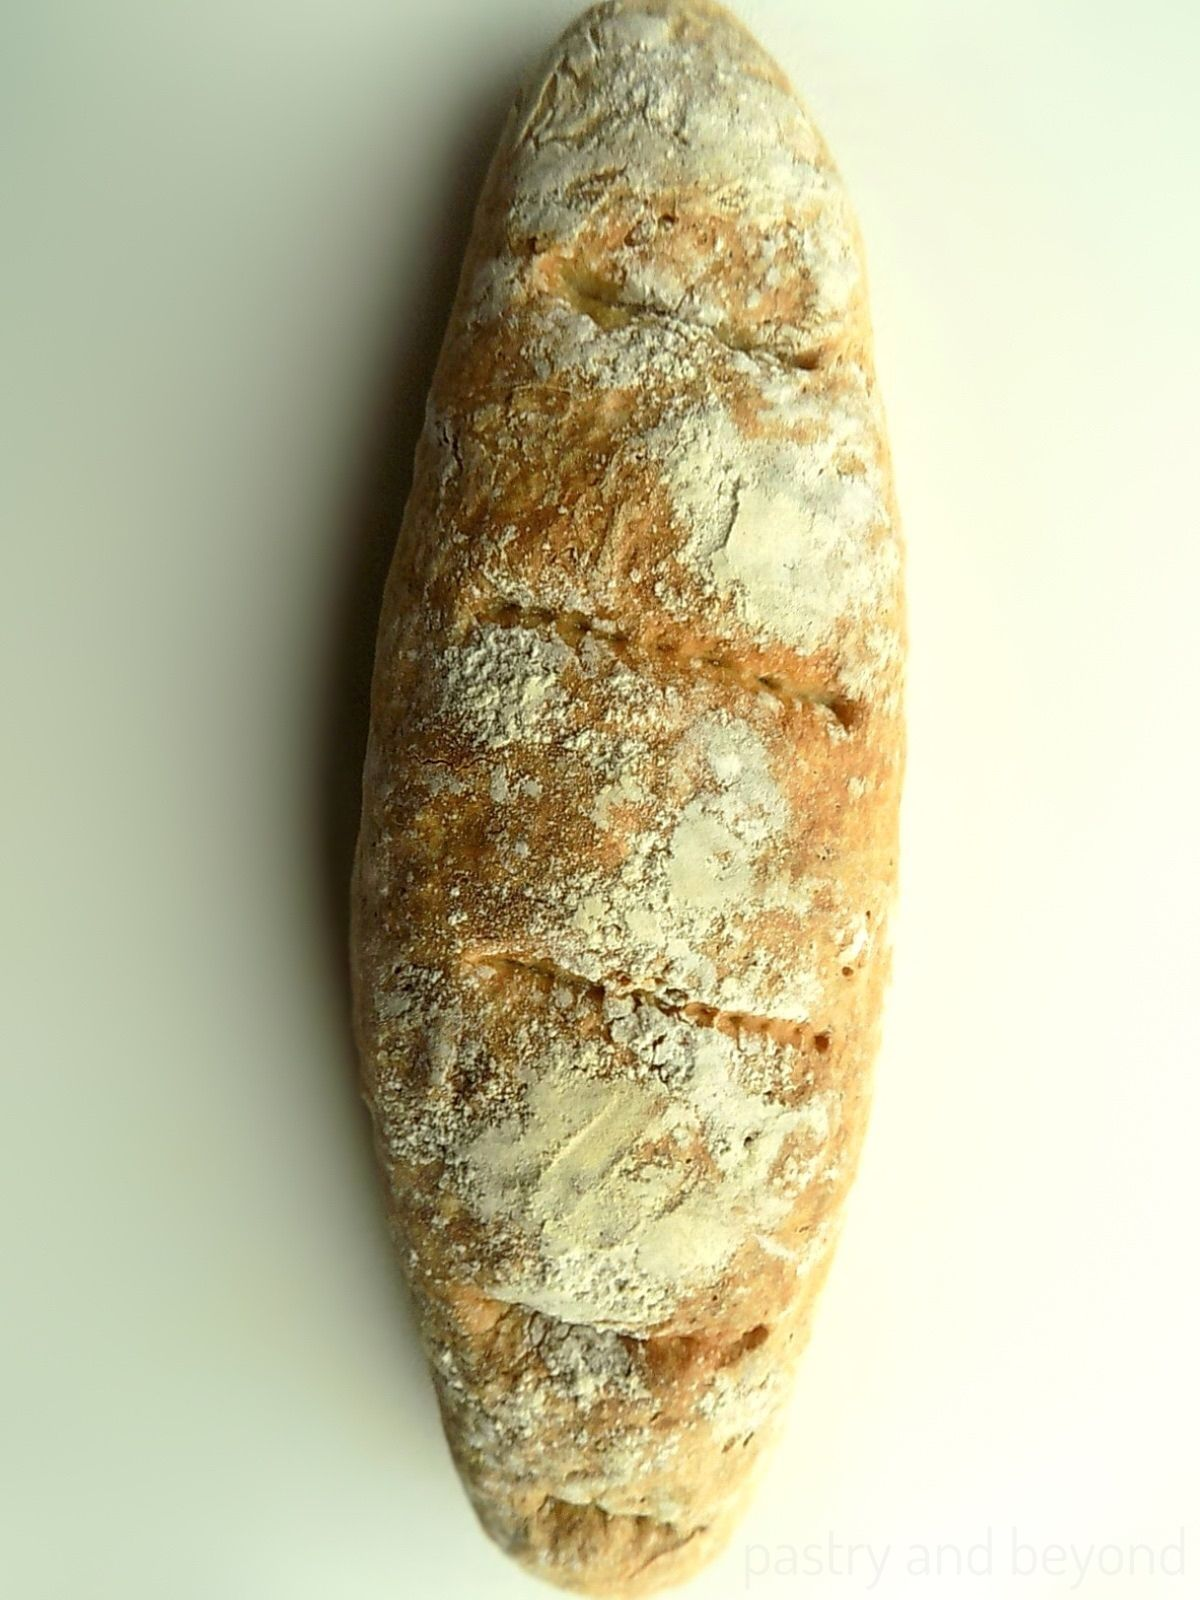 Homemade artisan long loaf bread on a white surface.